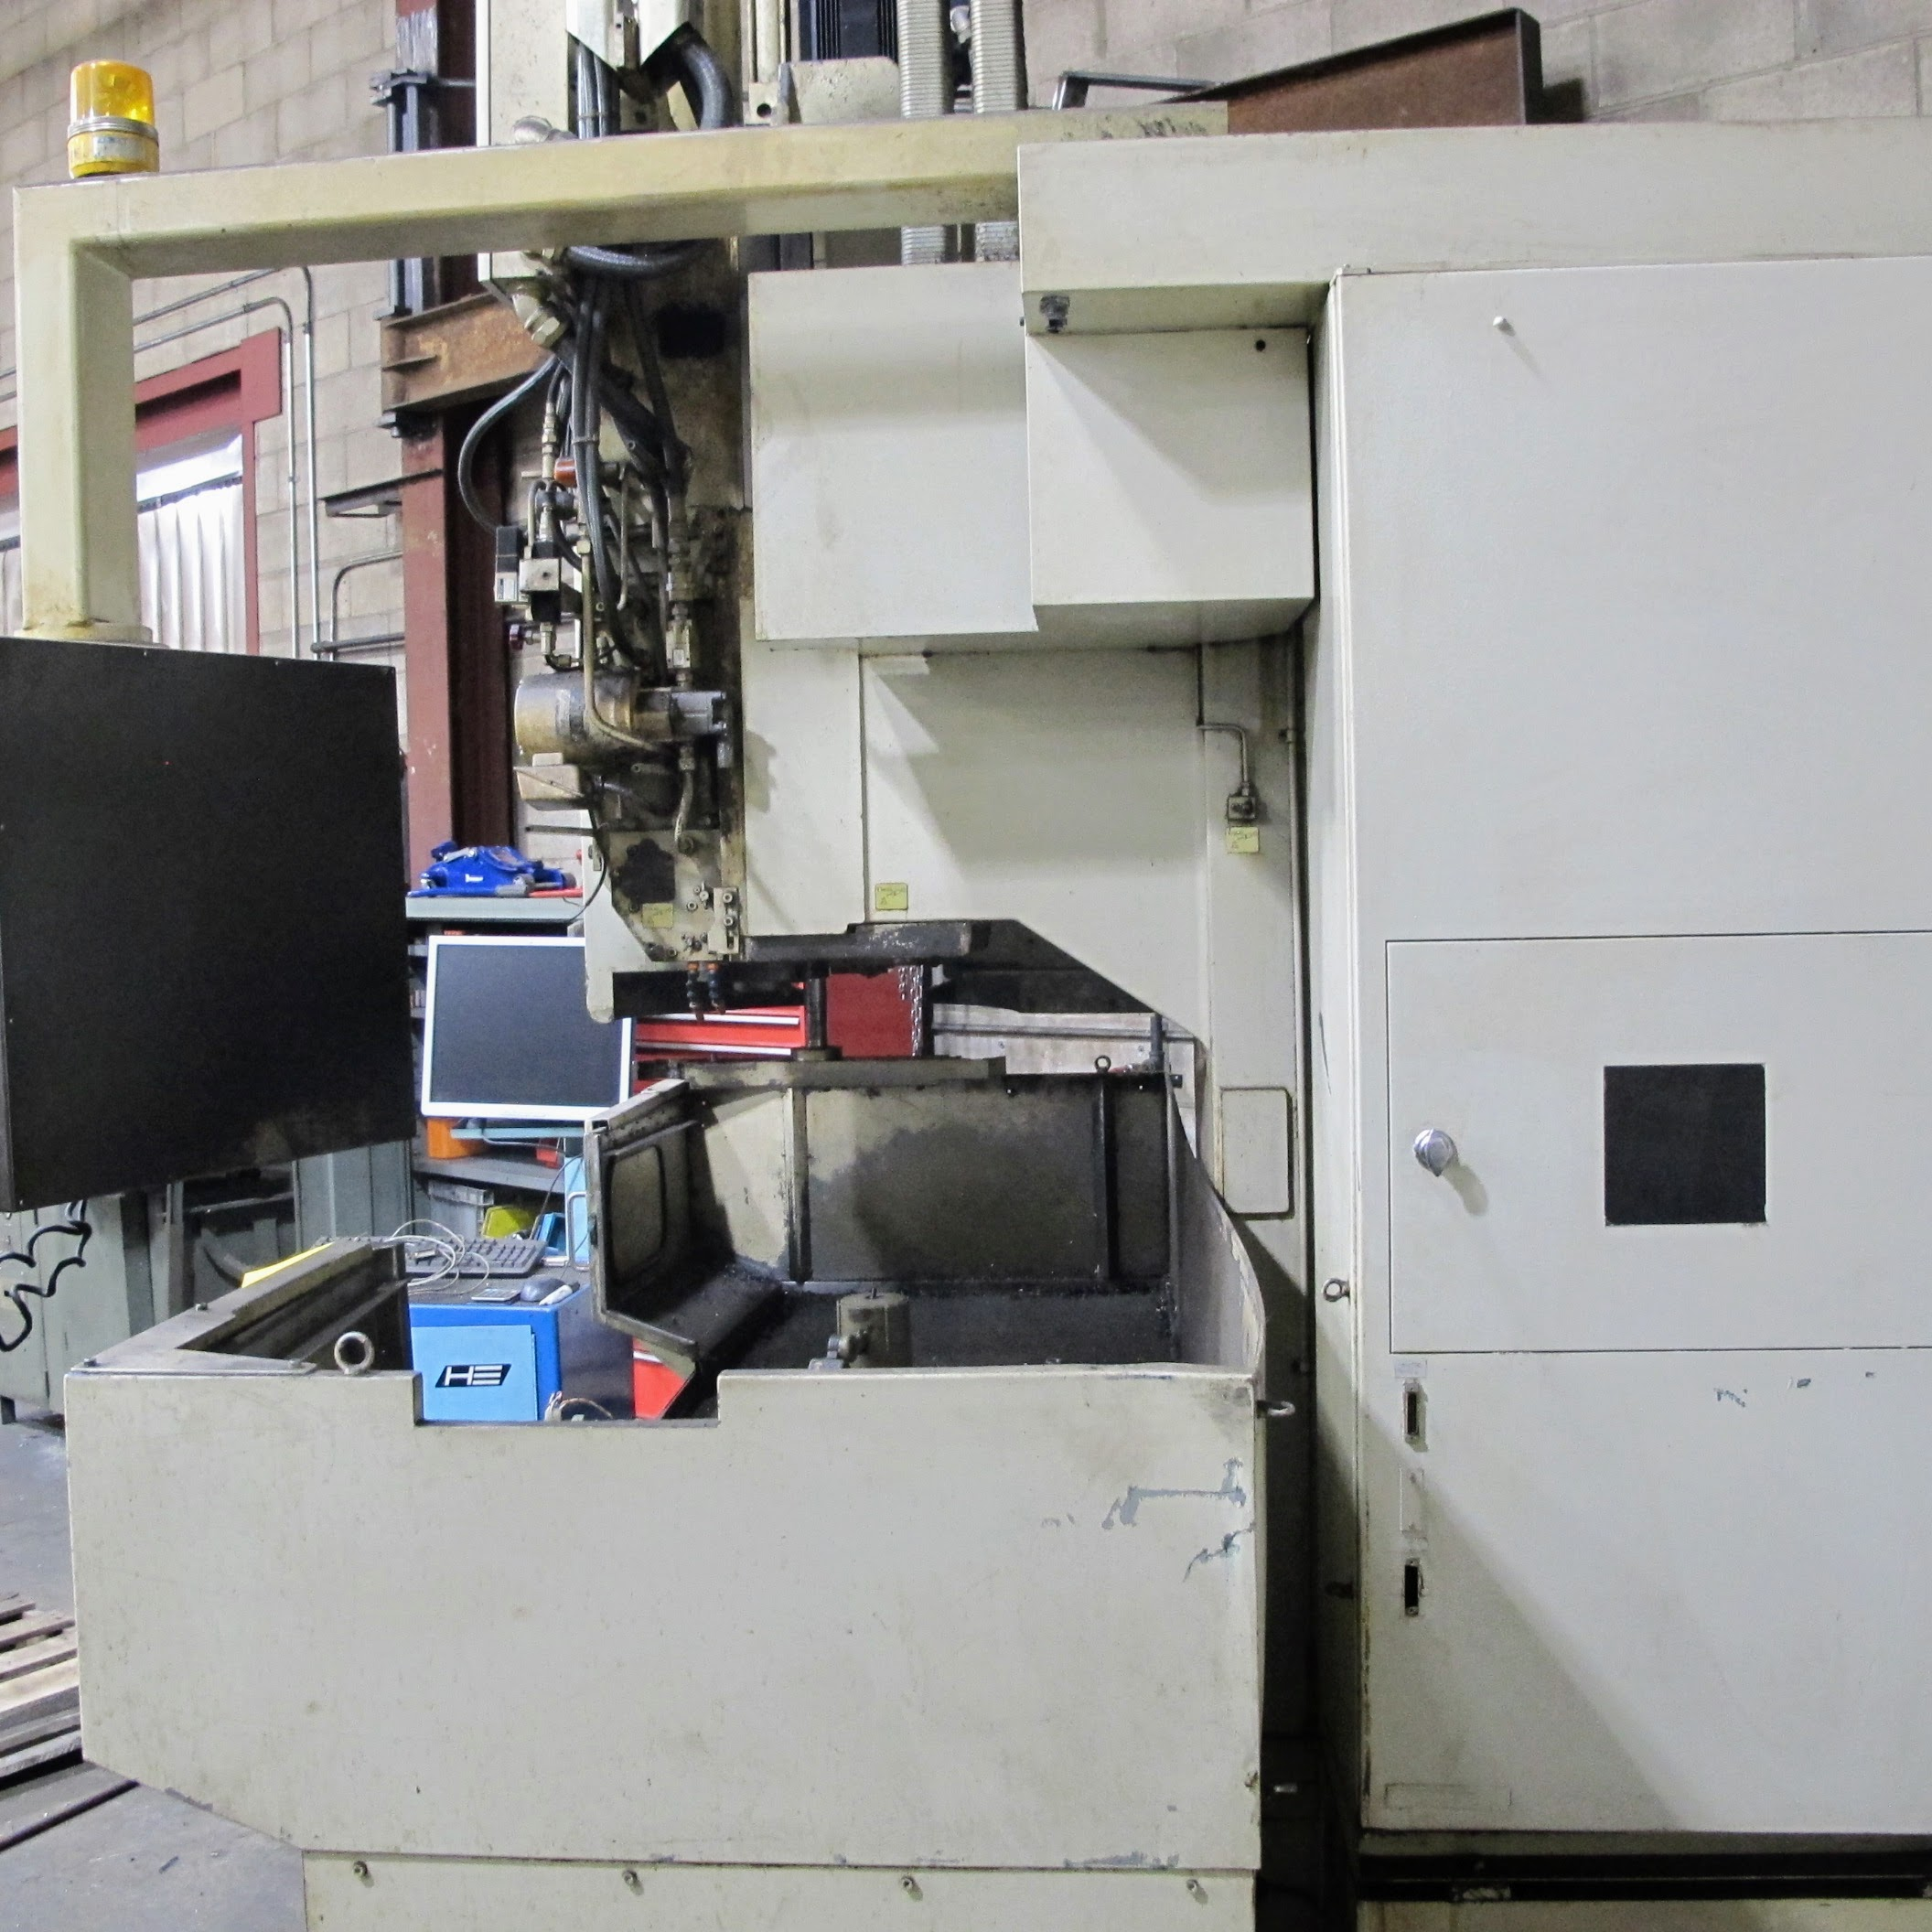 """SHIBAURA VMC-45 CNC VERTICAL MACHINING CENTER, 18"""" X 40"""" TABLE, TOSNUC CNC CONTROLS, 20 ATC, COOLING - Image 2 of 6"""